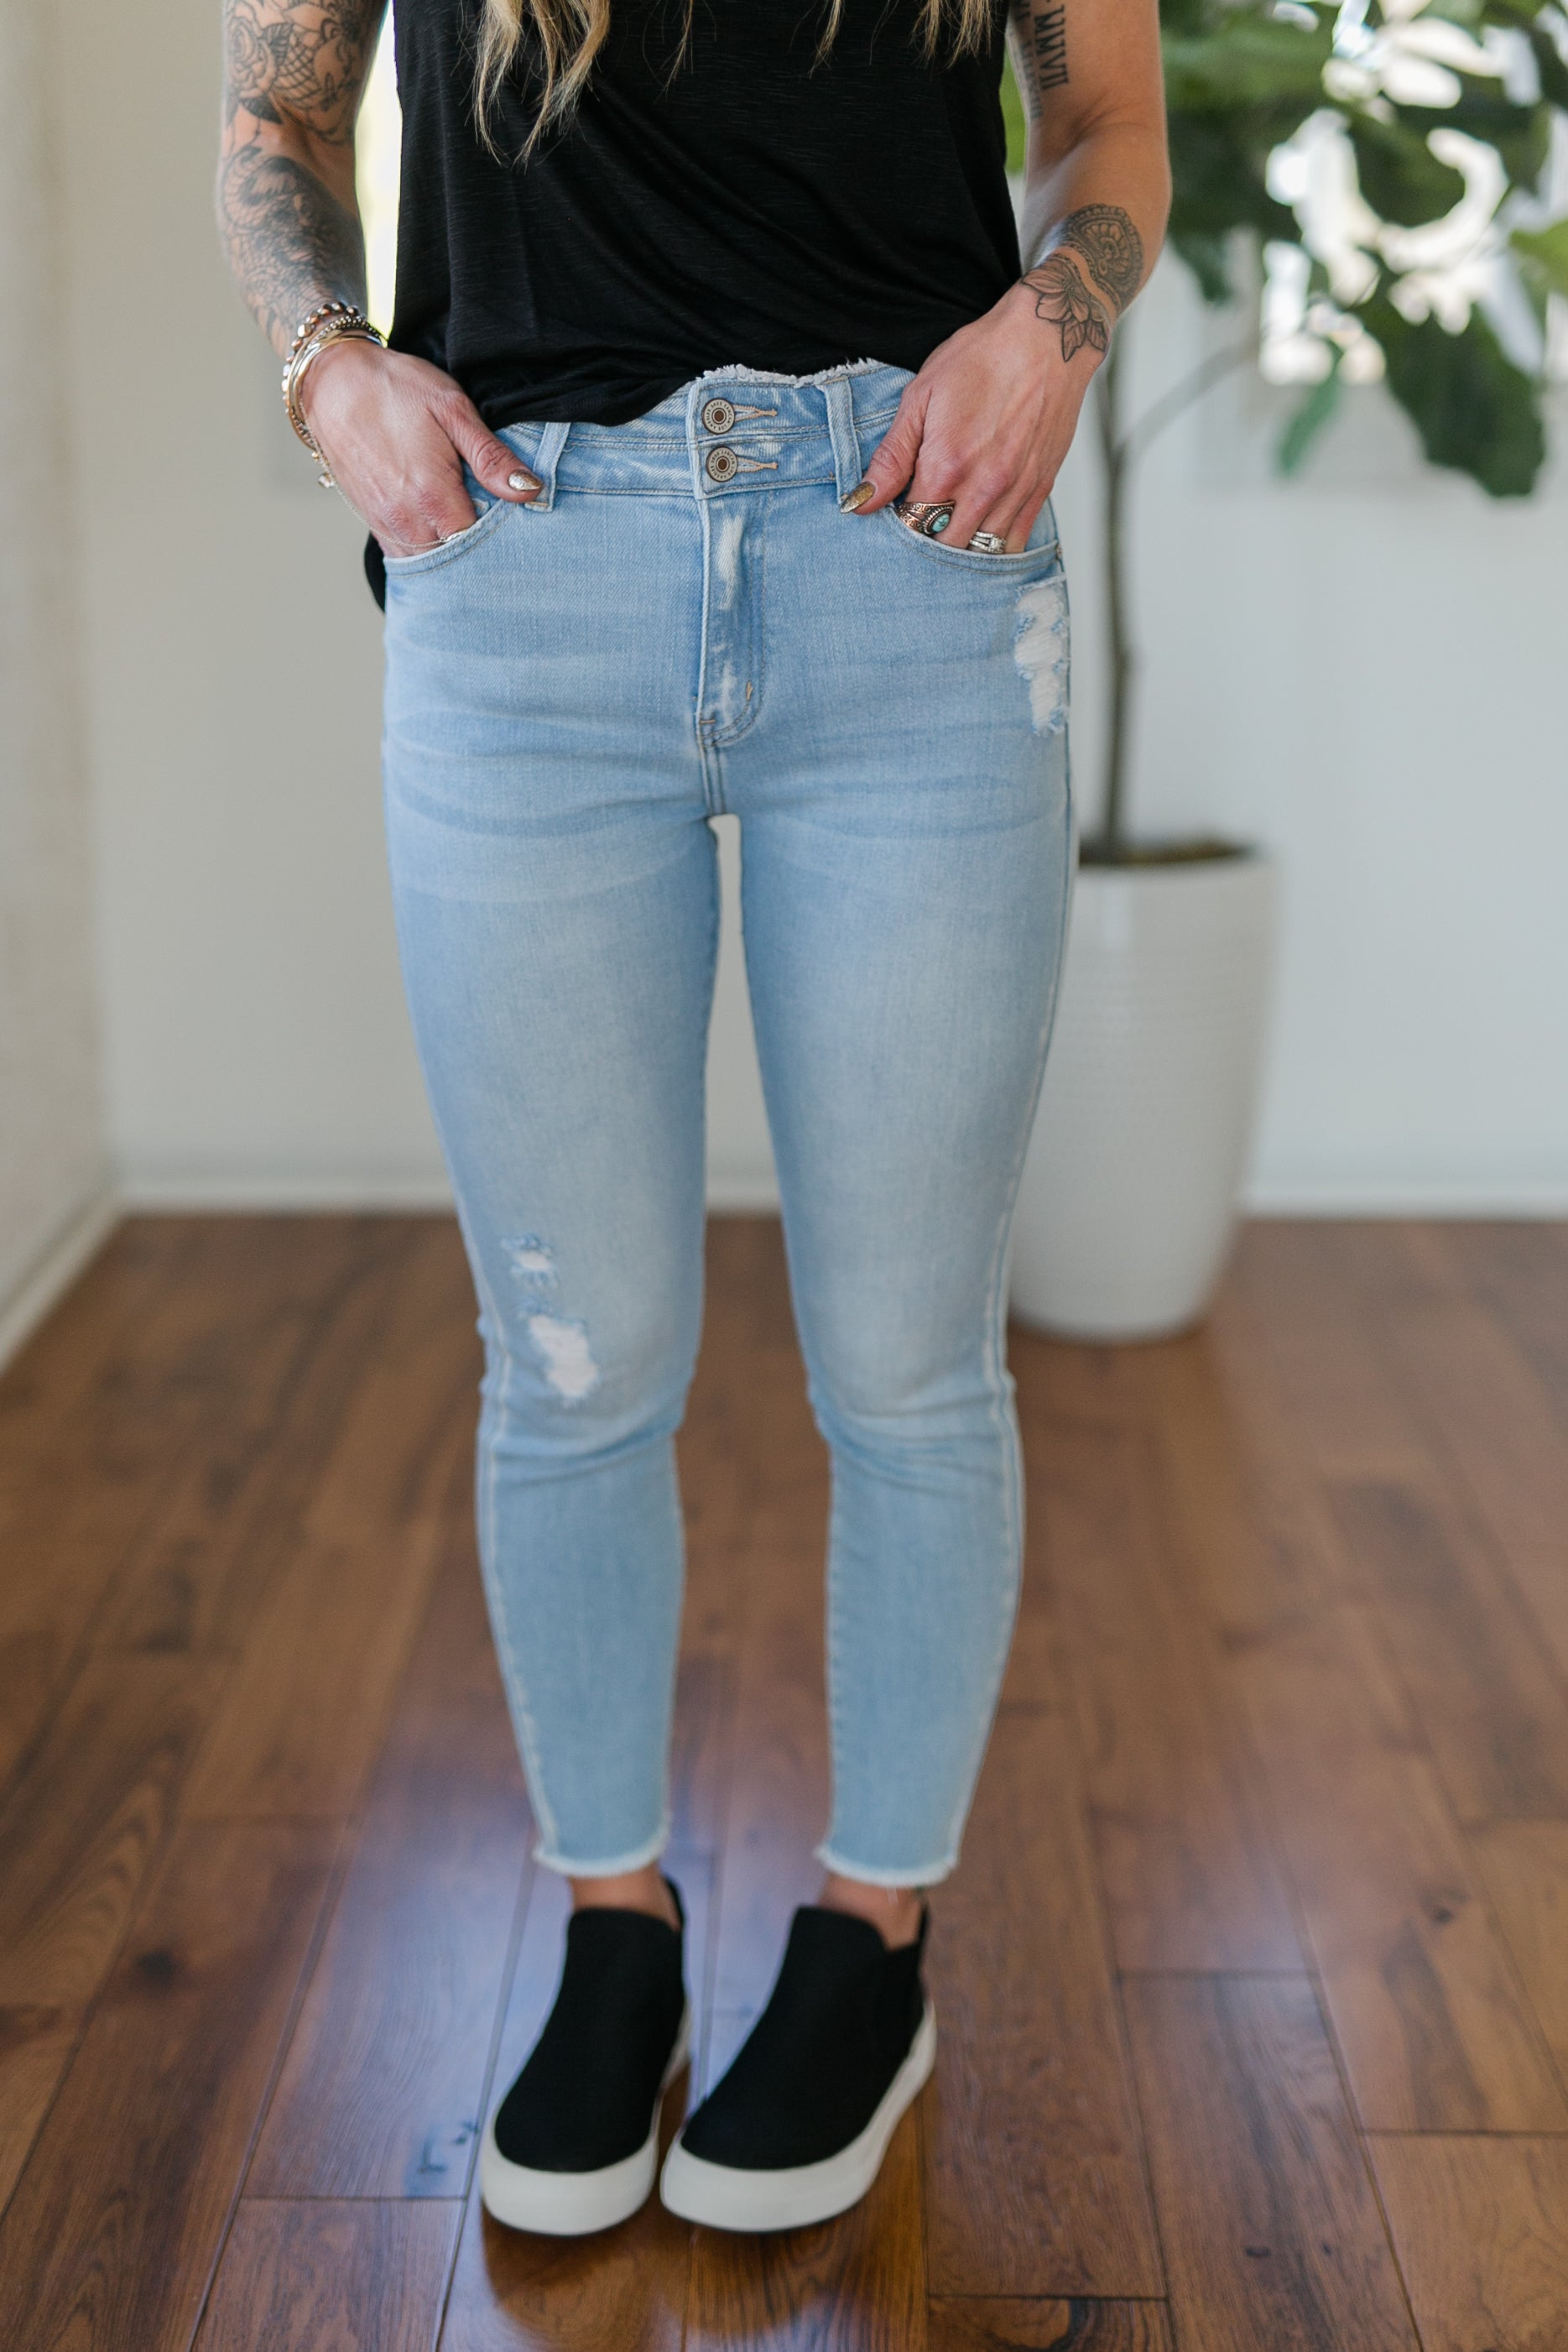 HIGH + MIGHTY DISTRESSED HIGH RISE SKINNY - LIGHT WASH